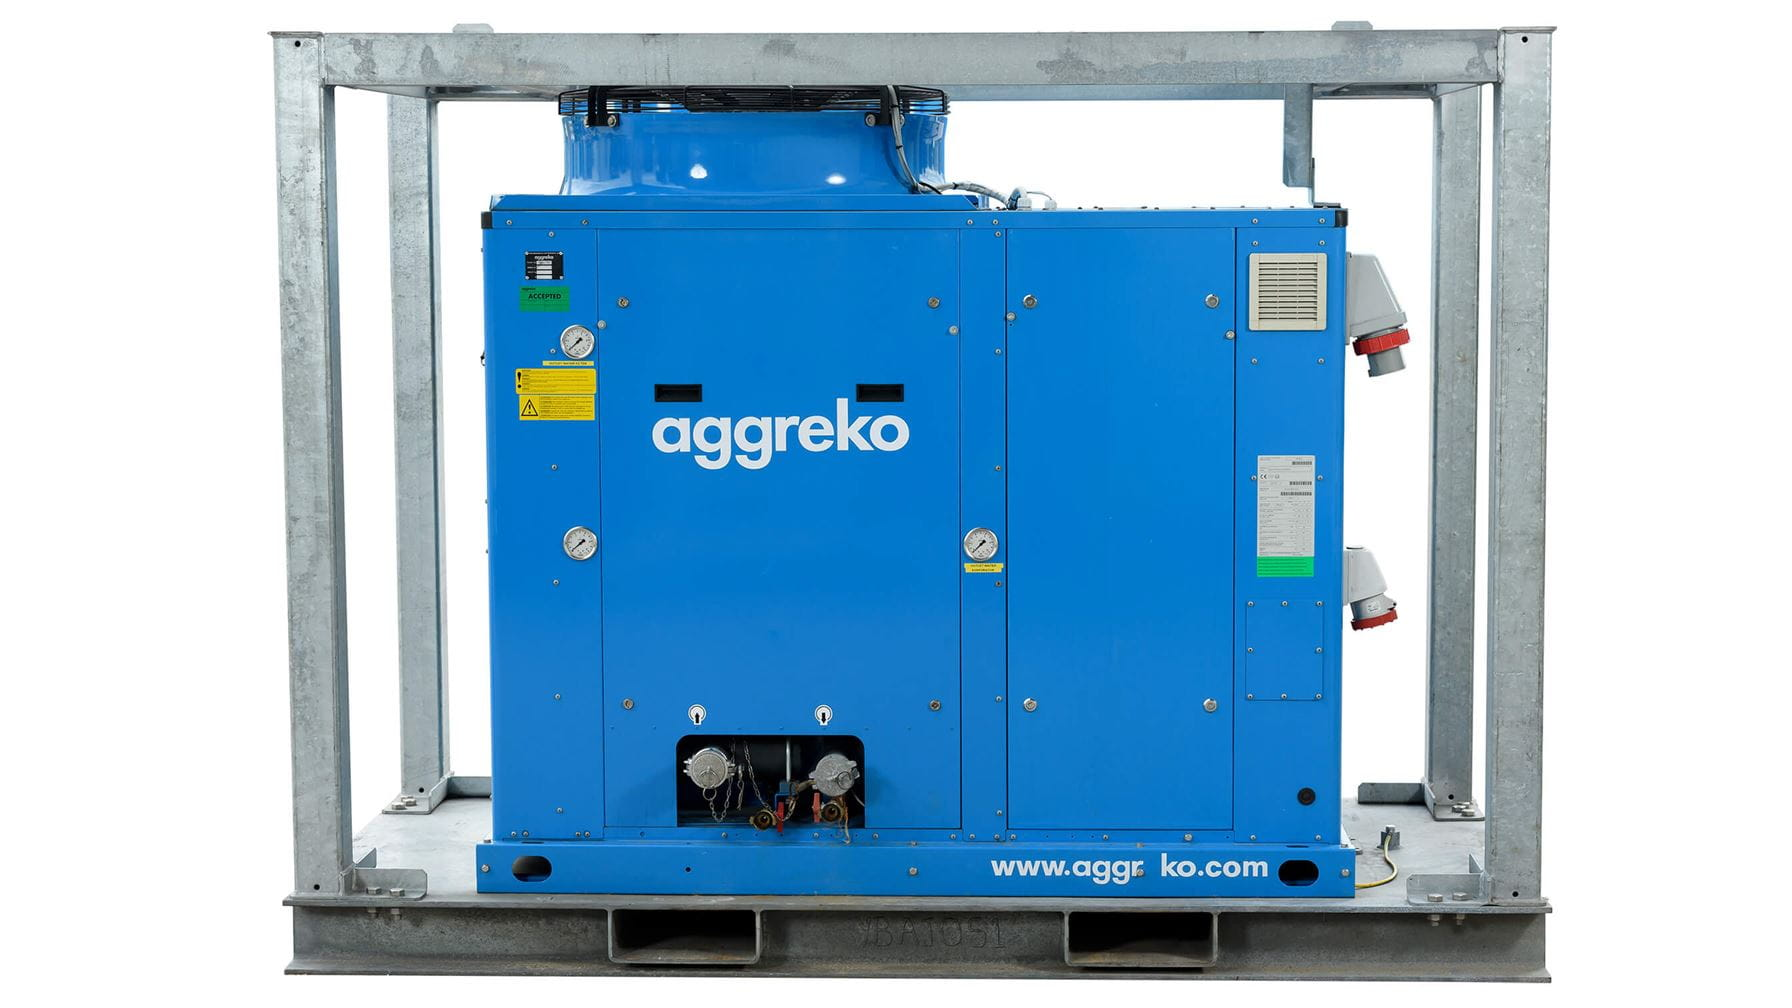 Avant groupe froid 50 kW